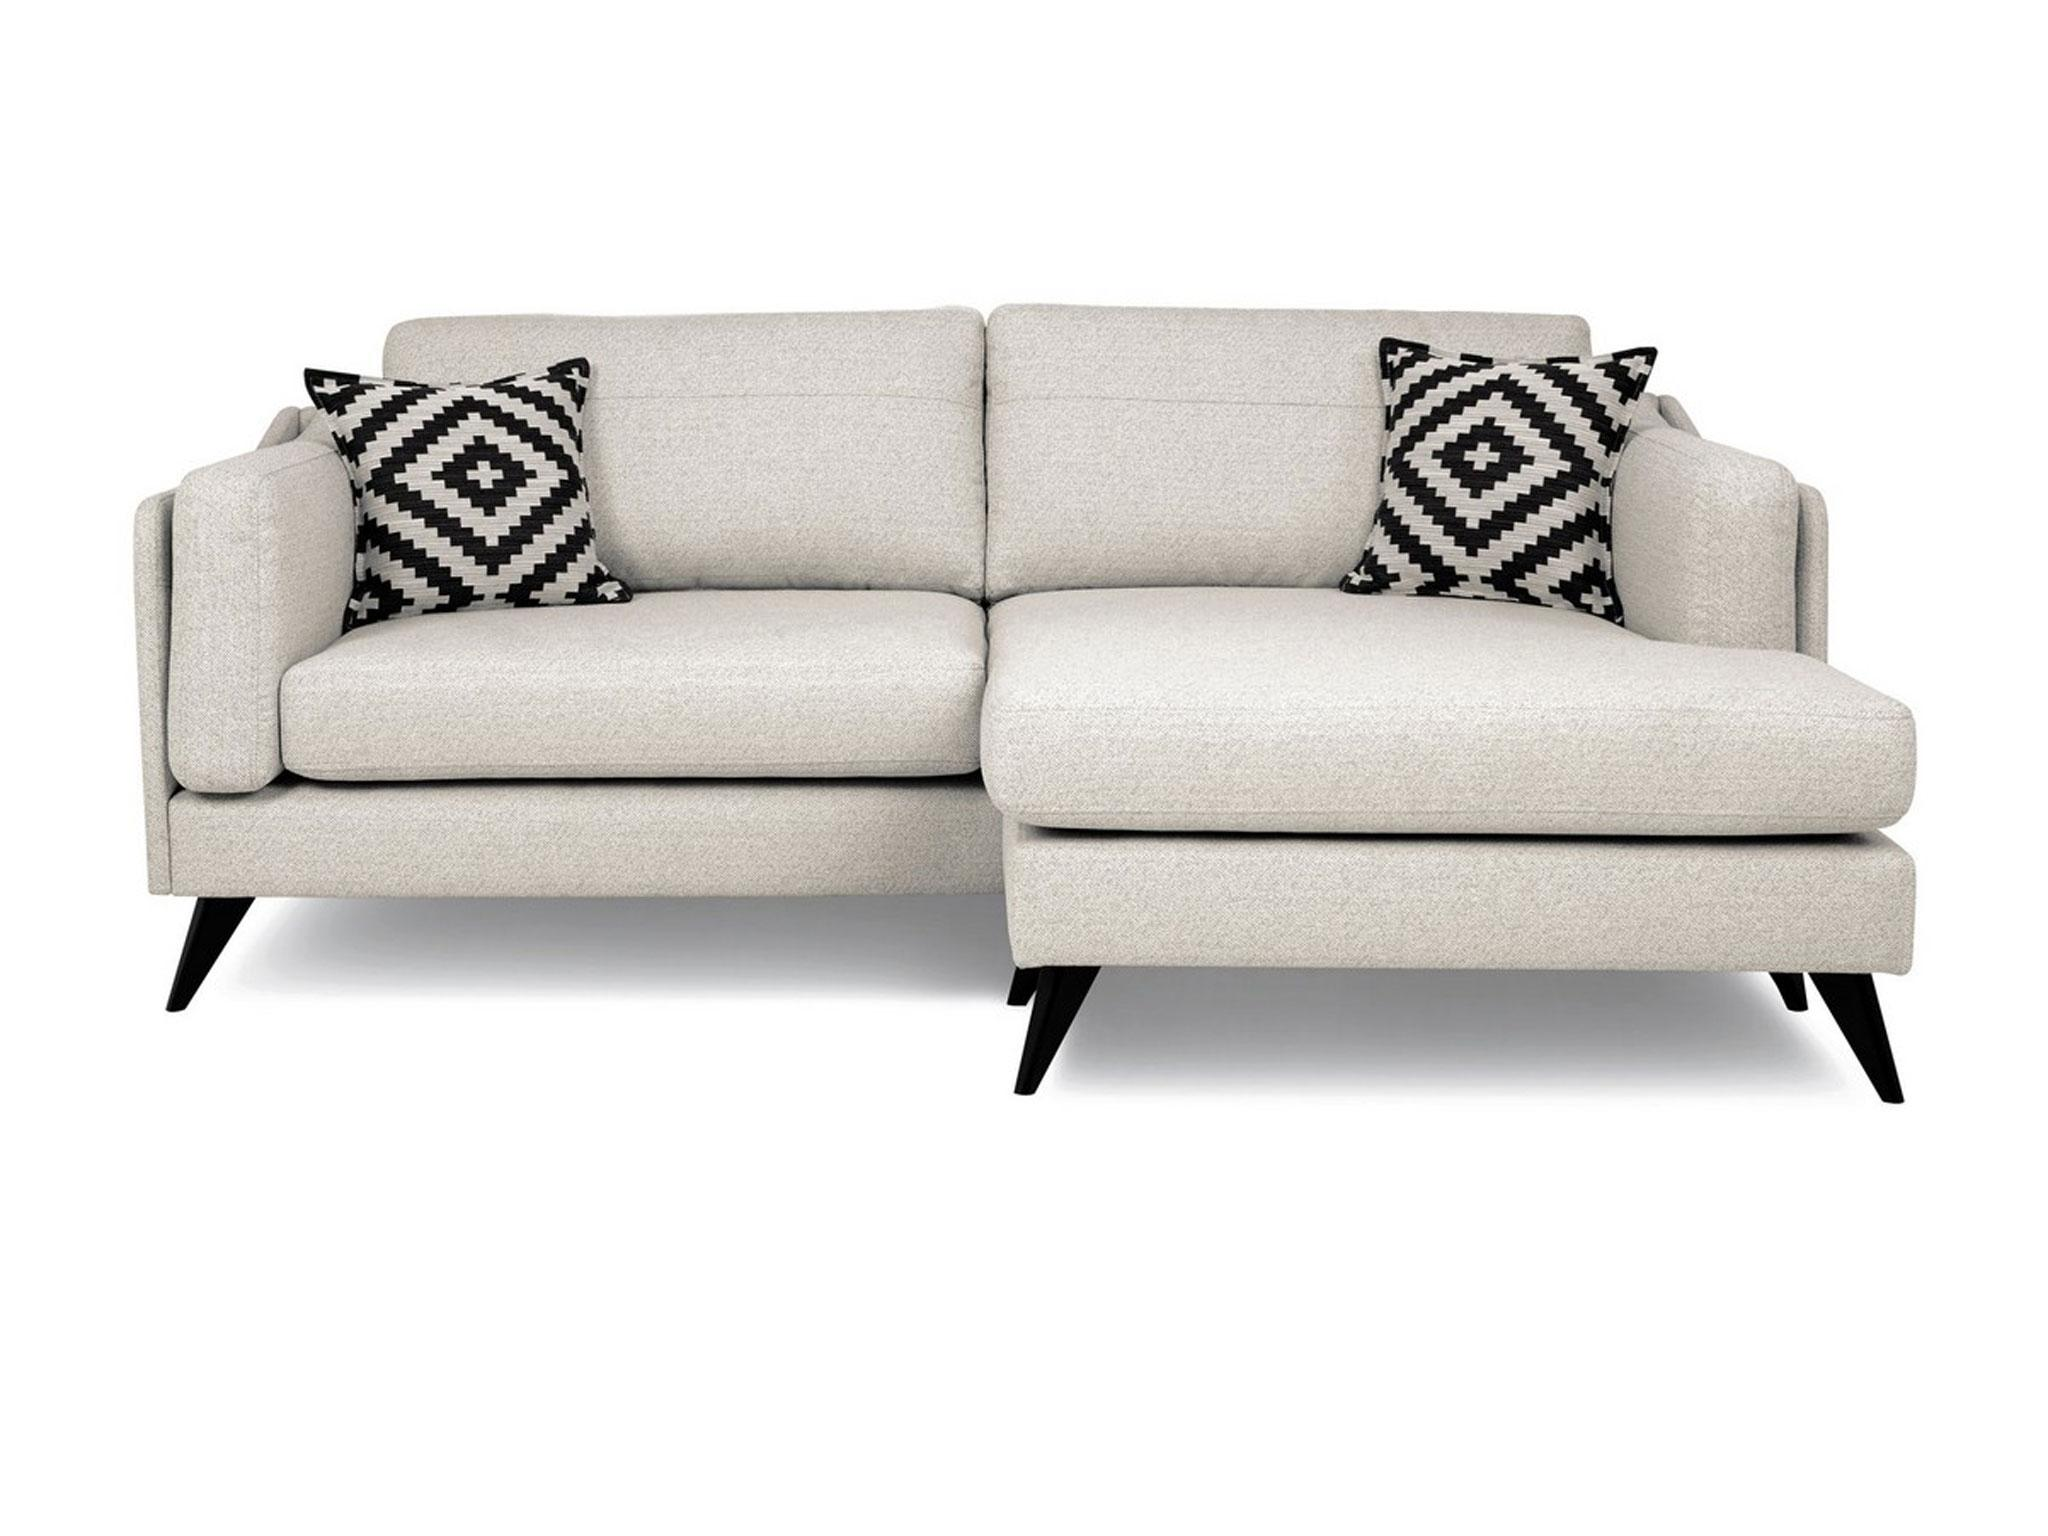 The Two Seater Sofa Has A Chaise End Thatu0027s Perfect For Stretching Legs Or  Accommodating An ...